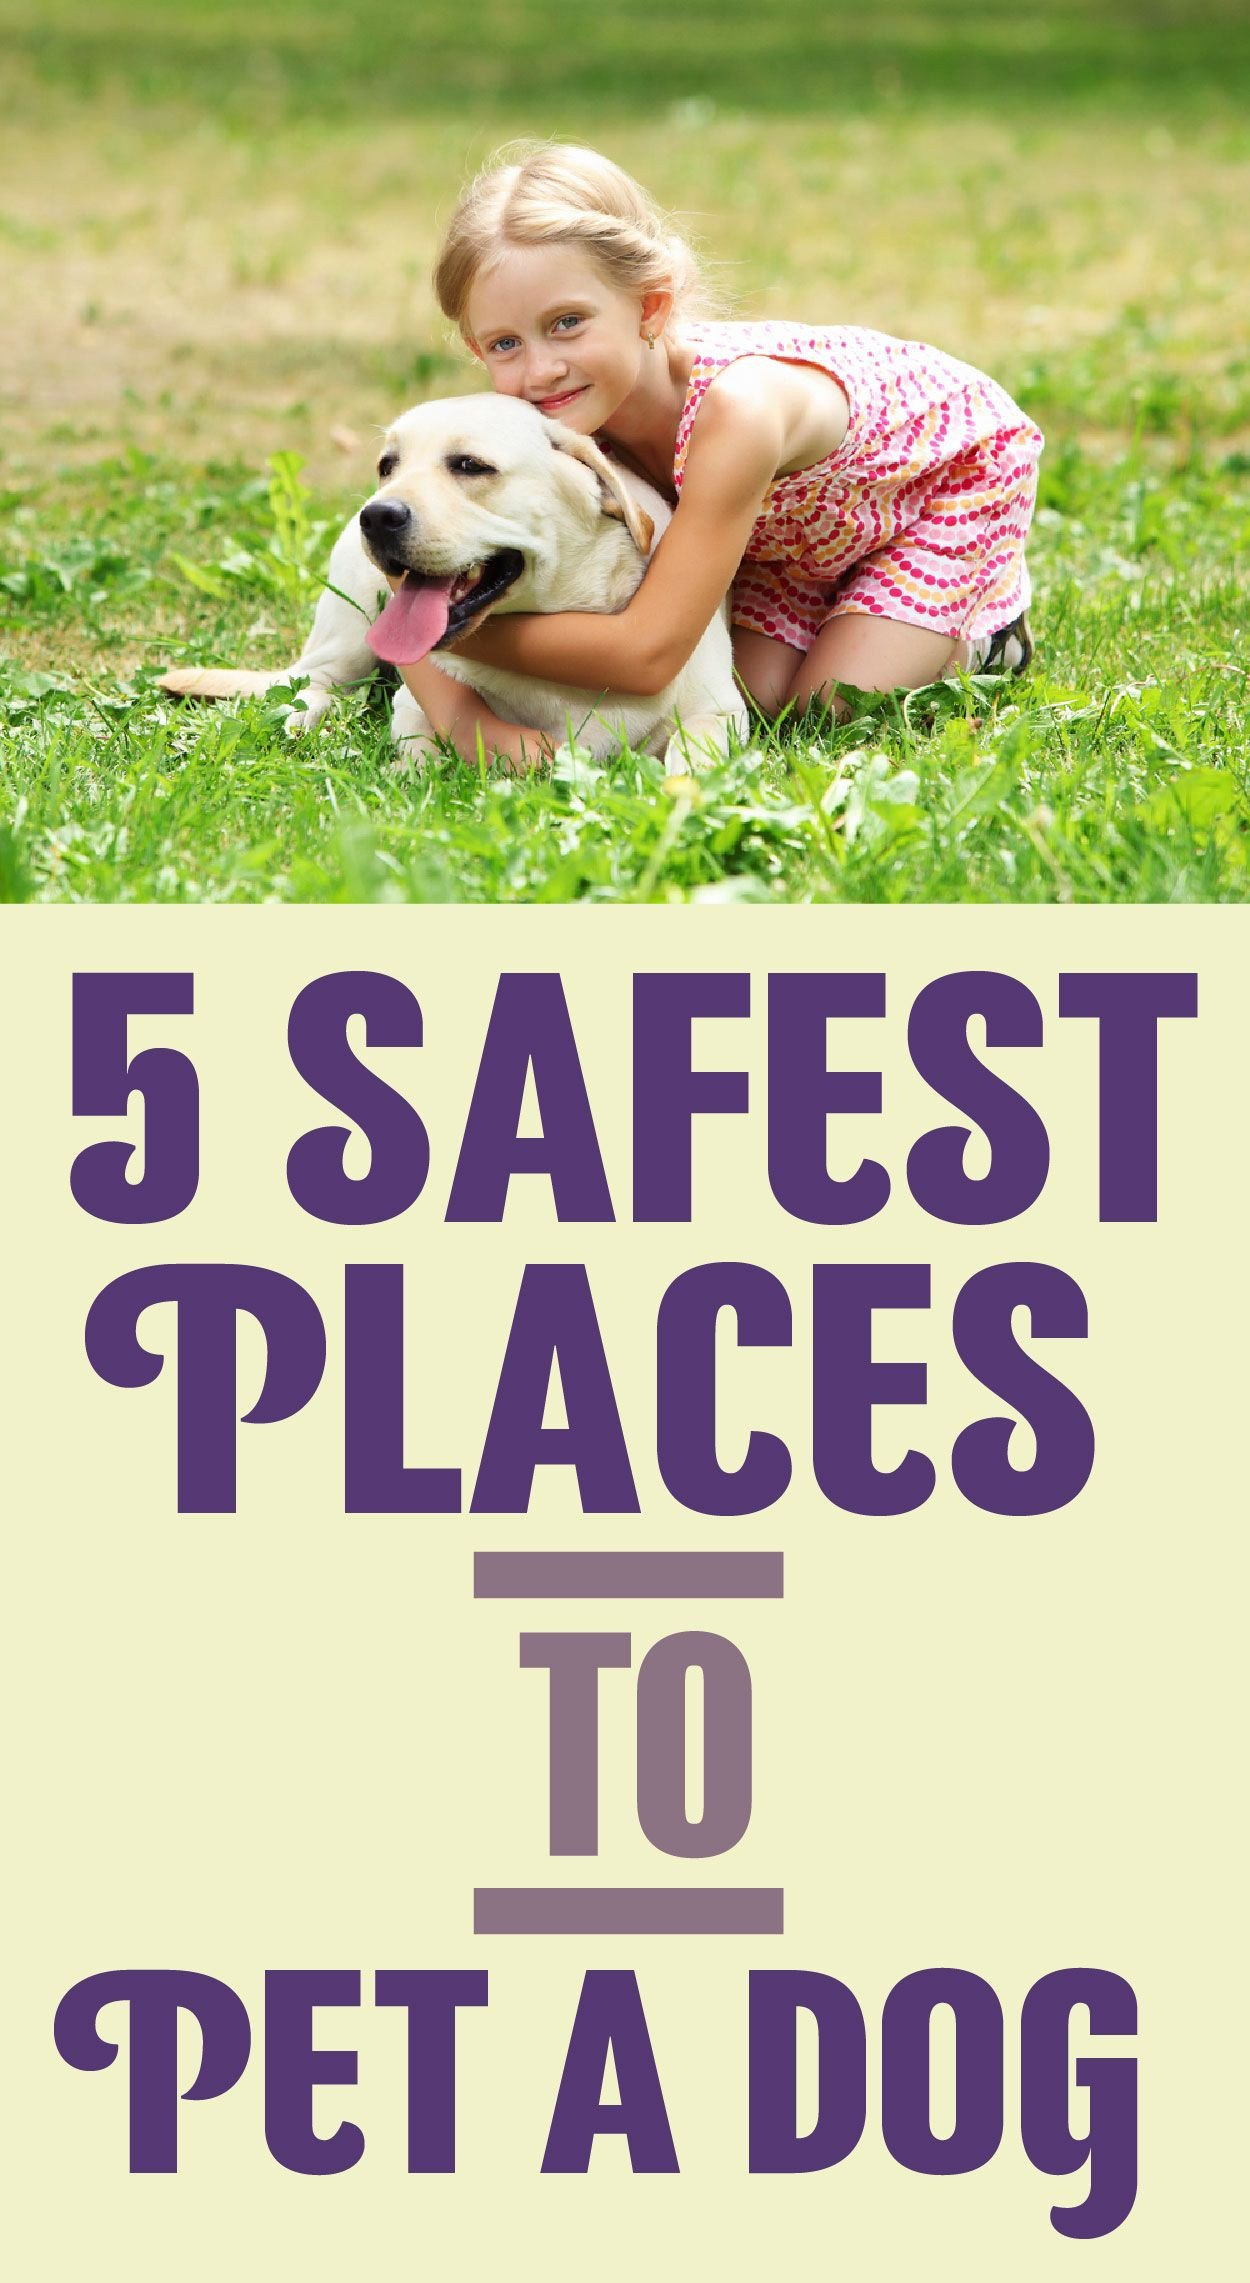 Dogs Decoded Worksheet 5 Safest Places to Pet A Dog